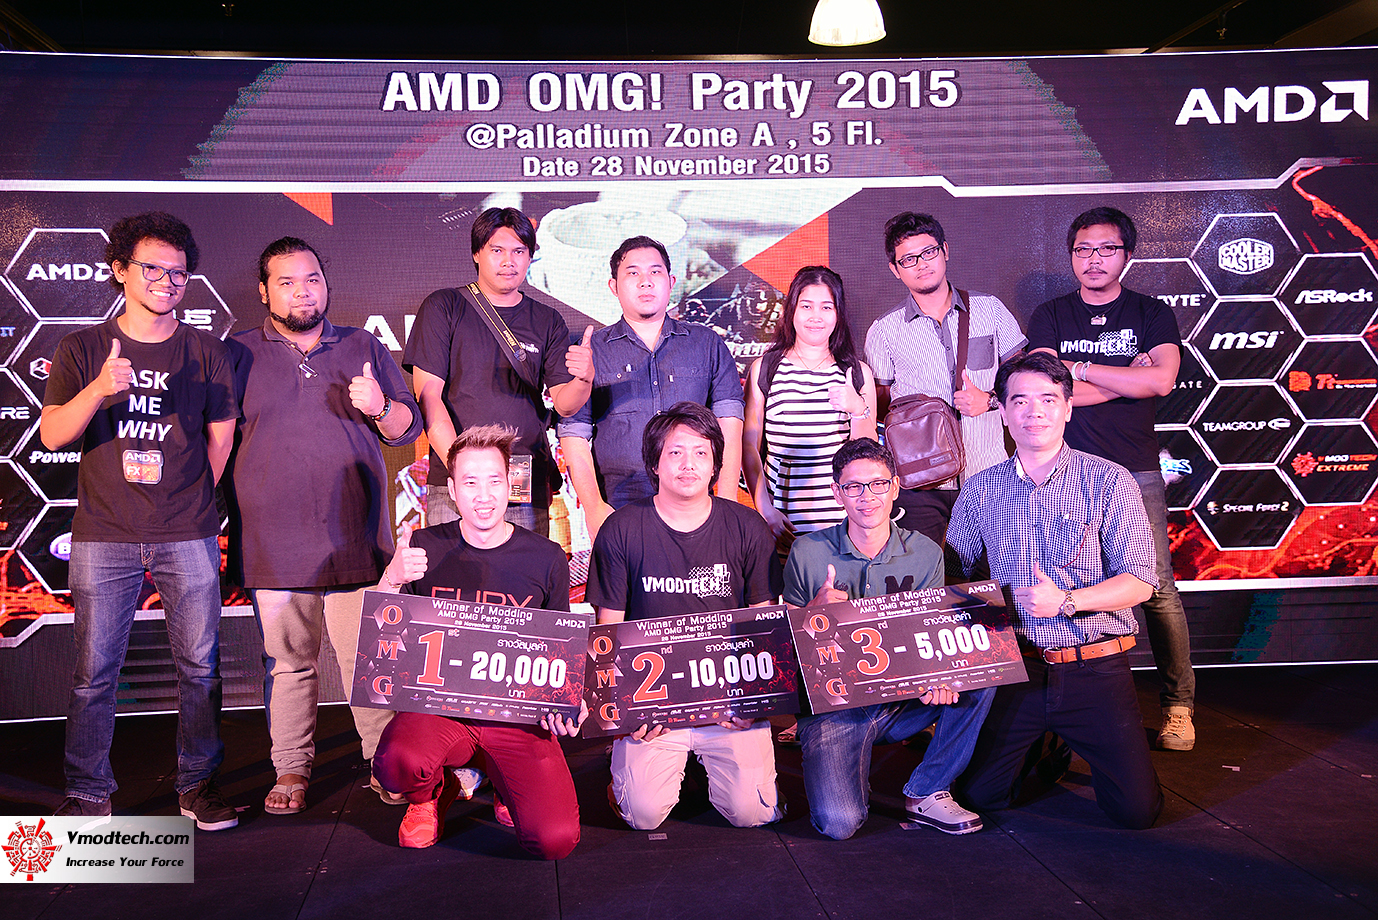 dsc 8141 AMD OMG! Party 2015 (AMD Overclock Modding Gaming Party 2015)